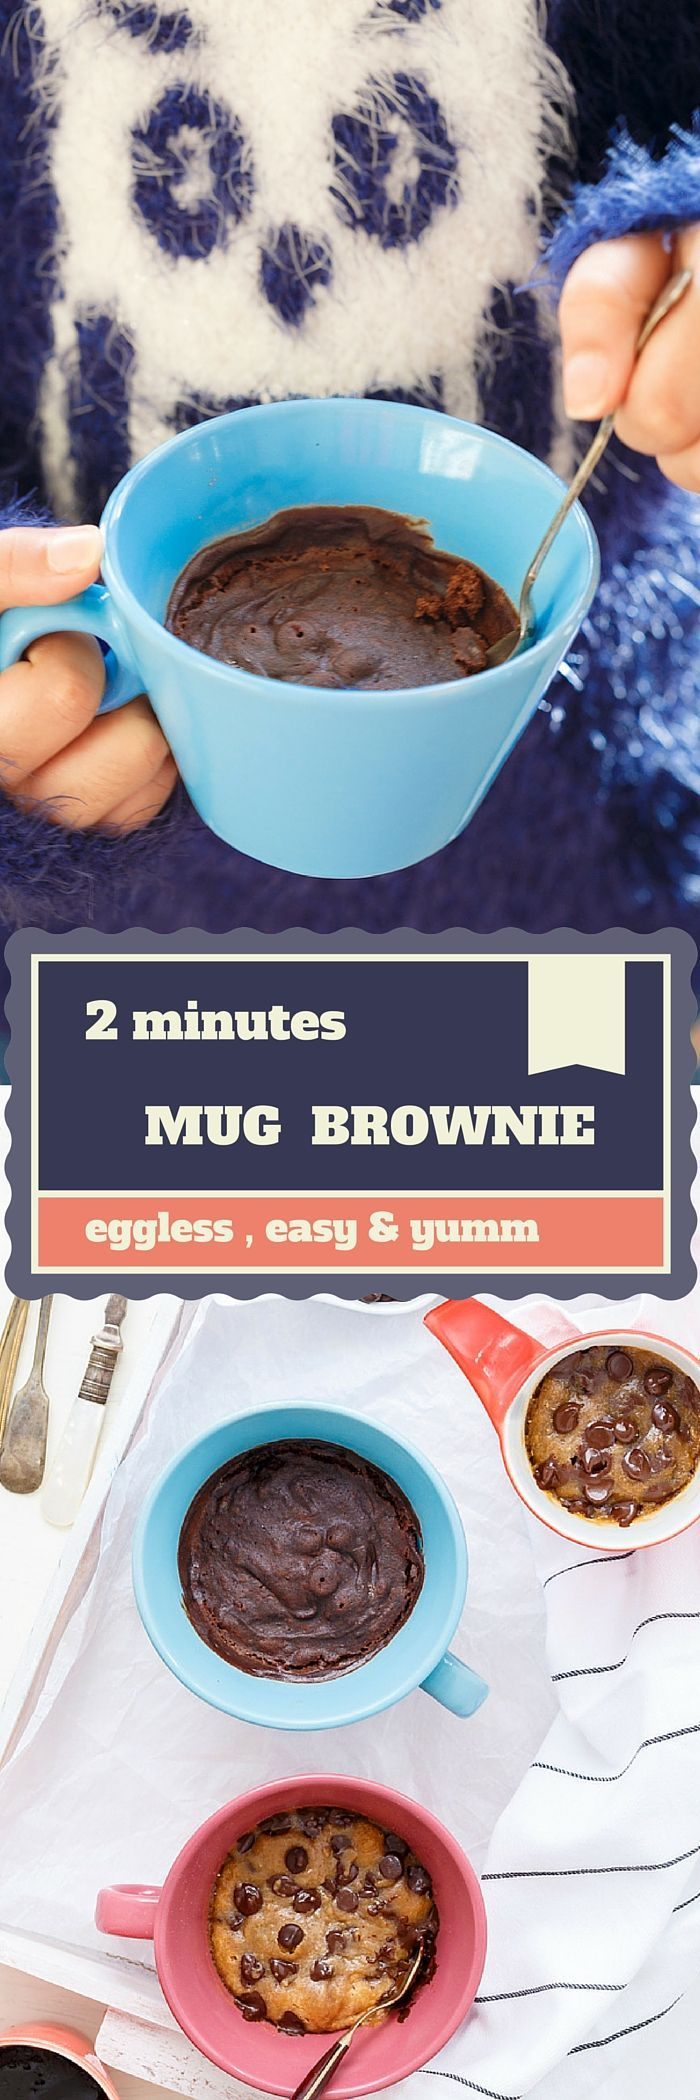 2 Minutes Eggless Chocolate Mug Brownie